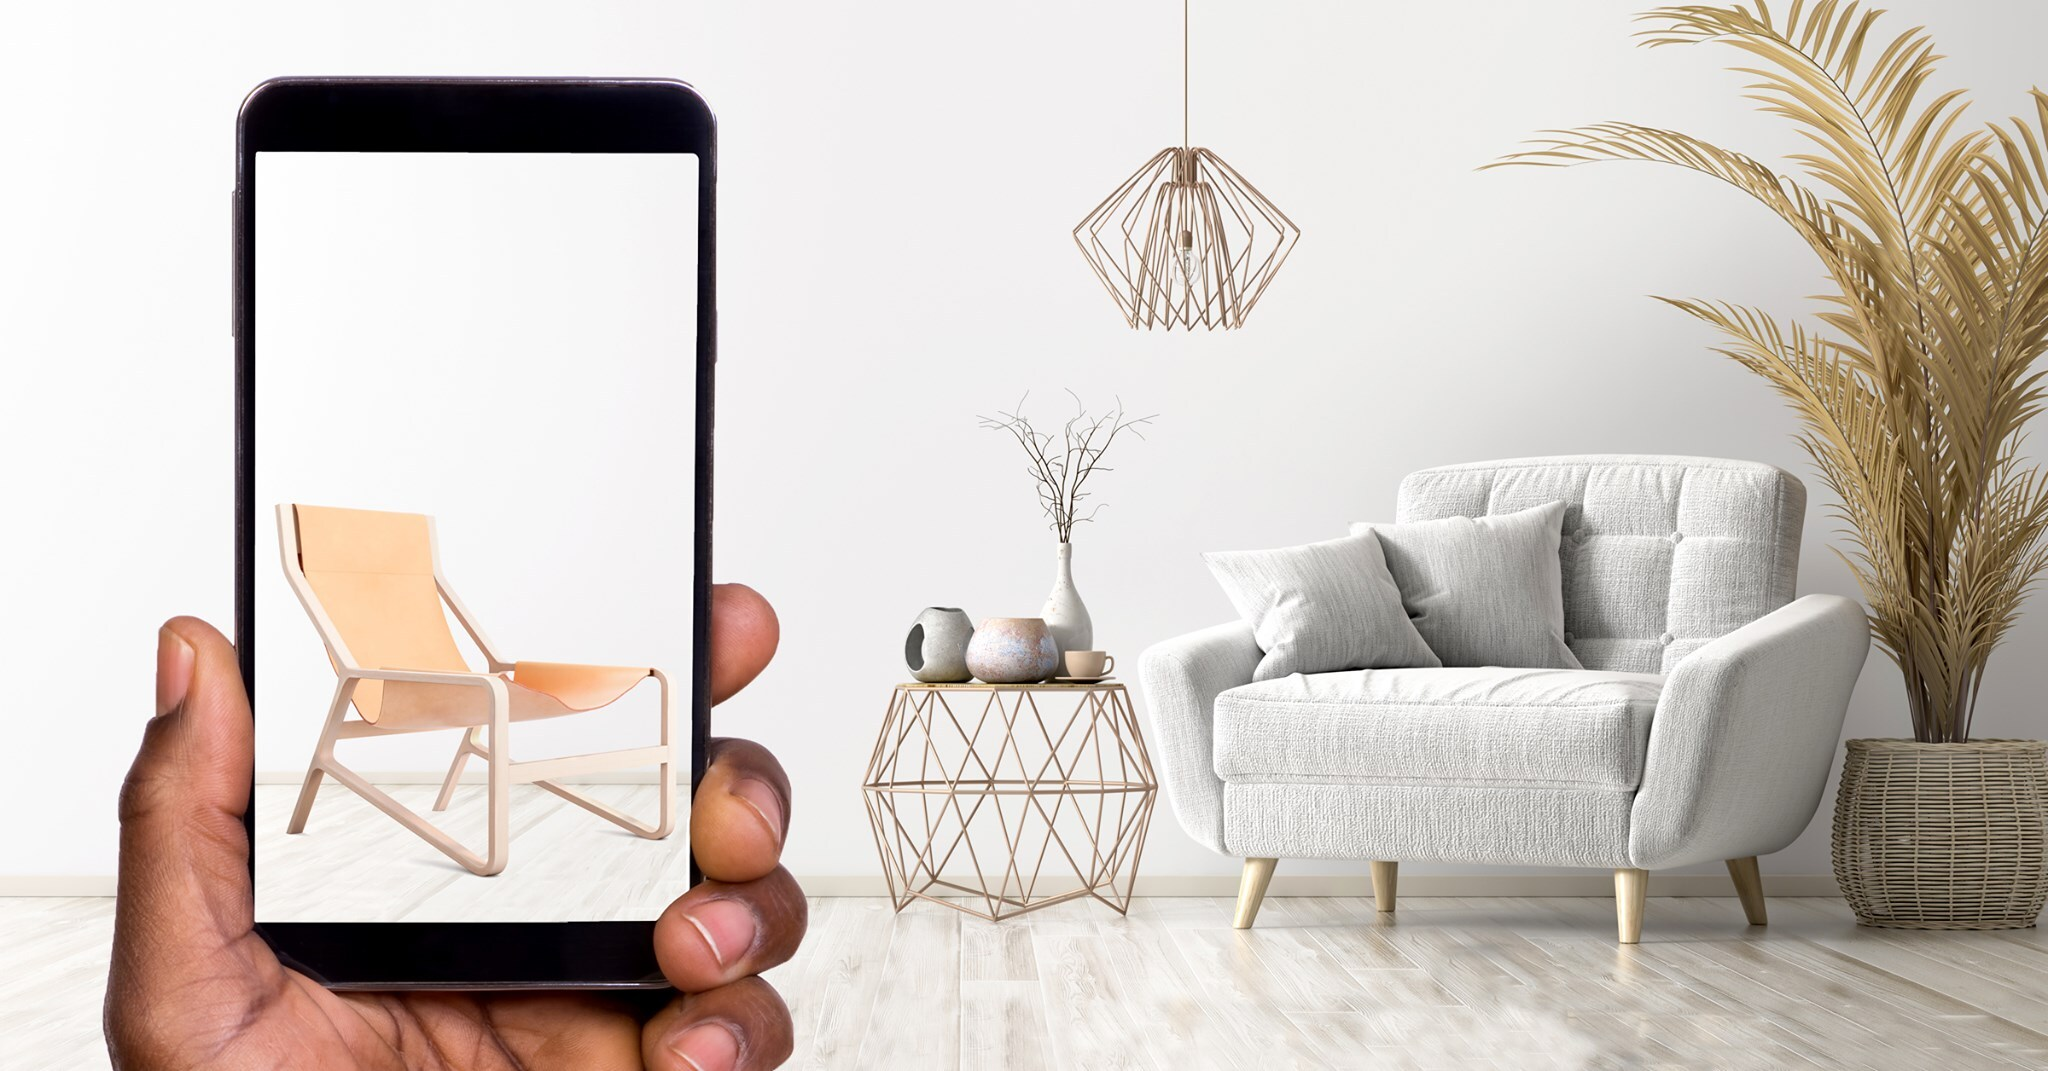 5 Ways to Increase AR Usage on Your E-Commerce Platform